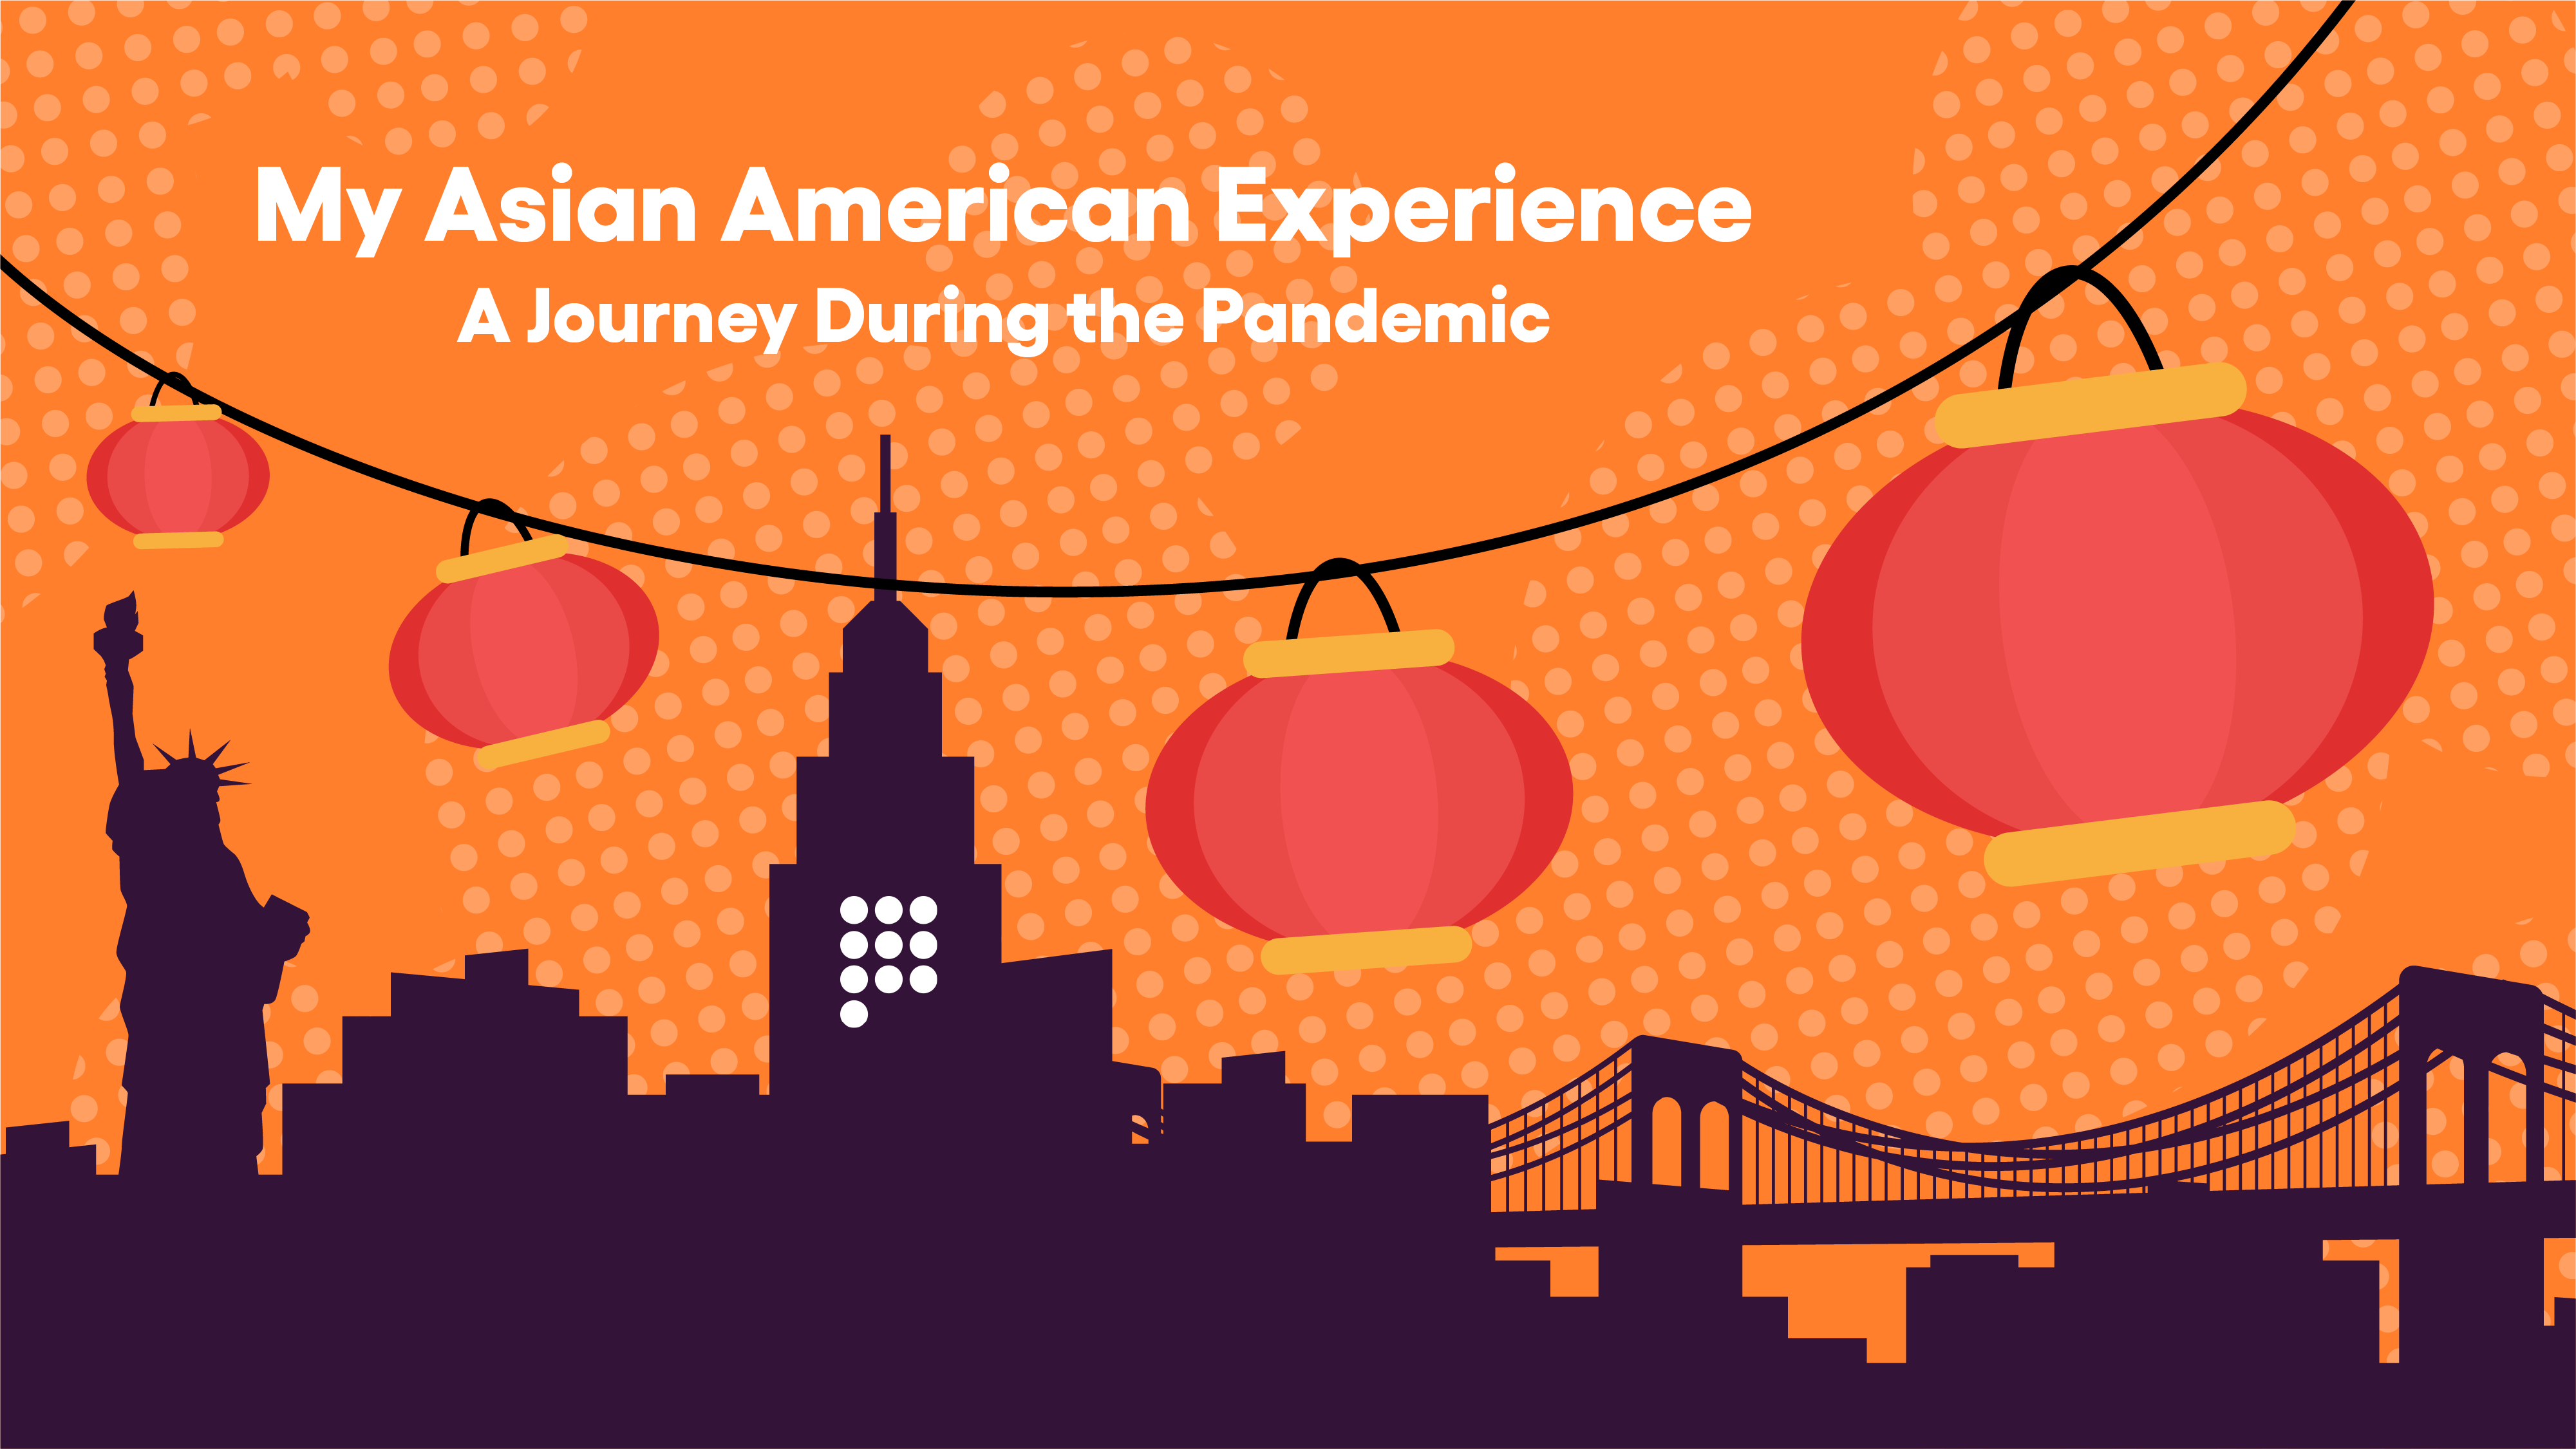 My Asian American Experience: A Journey During the Pandemic